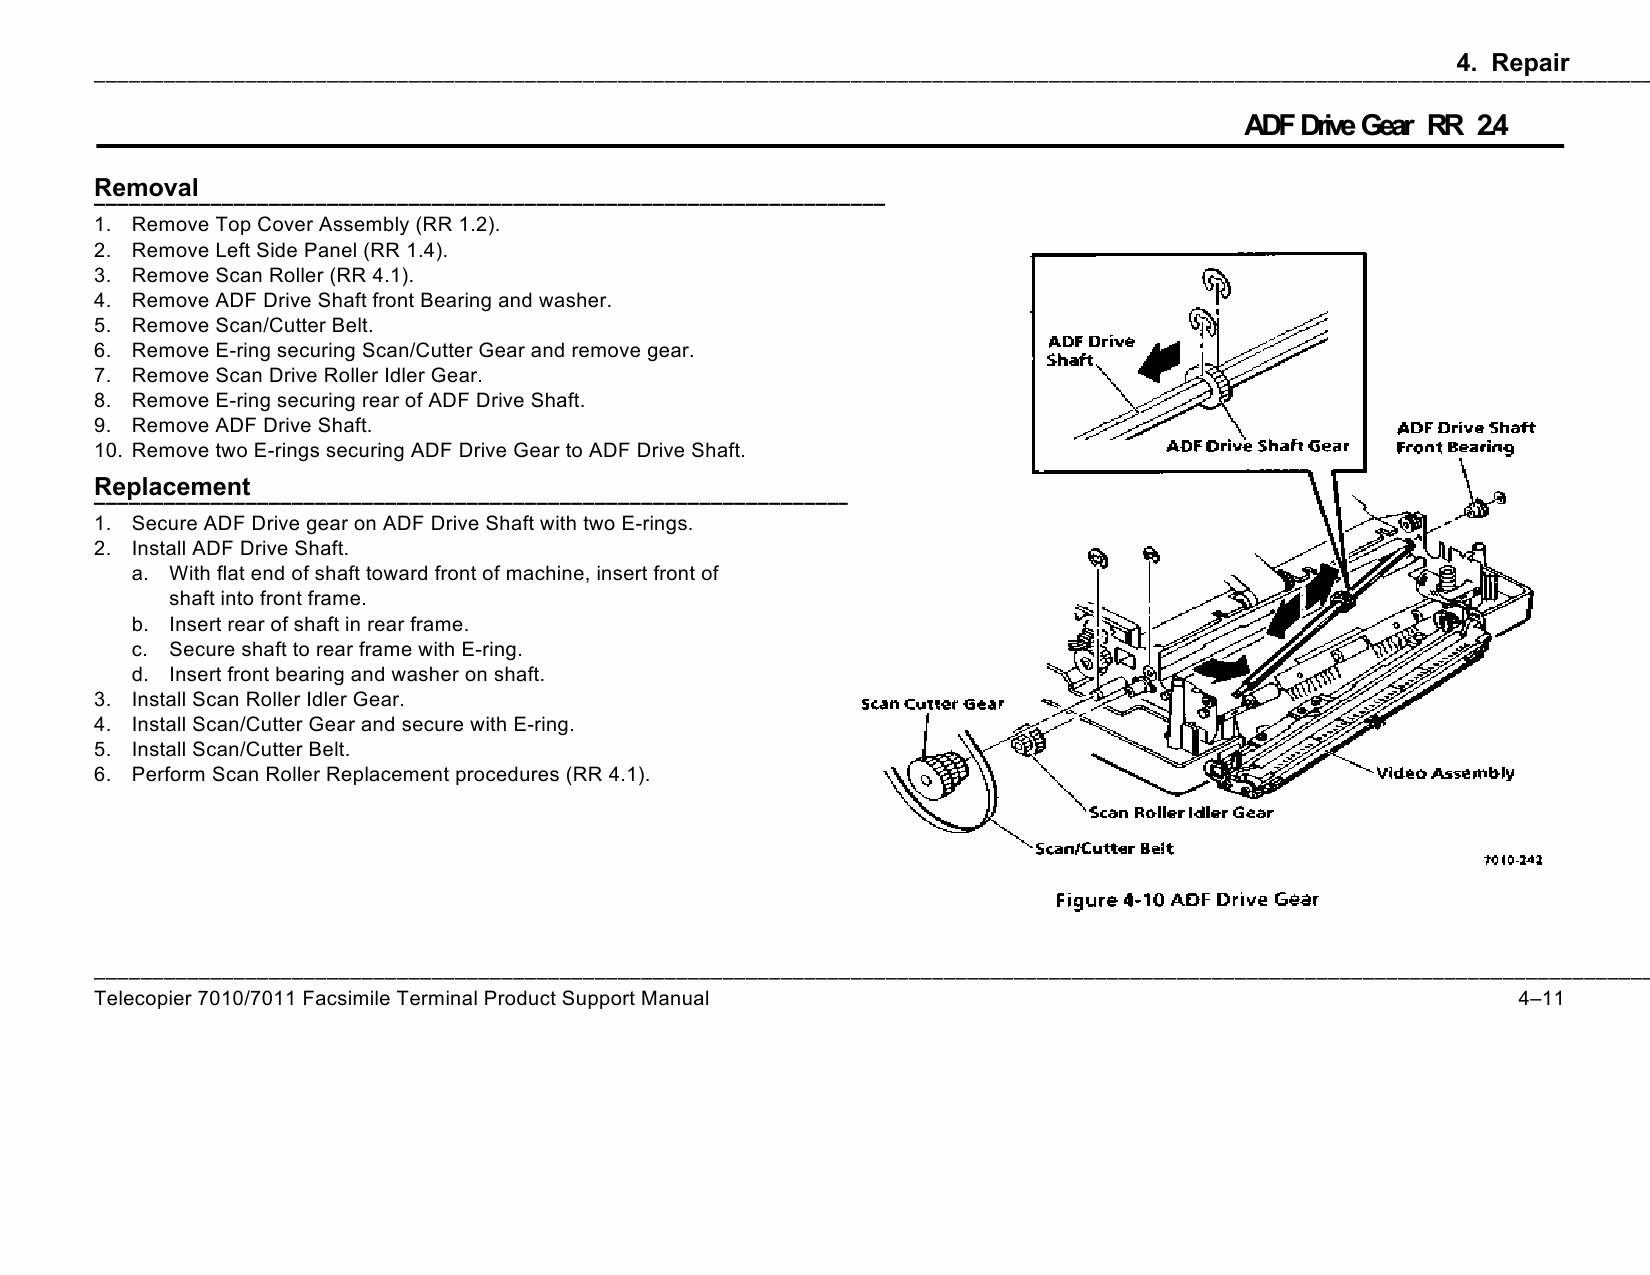 Xerox Printer 7010 7011 Fax Parts List and Service Manual-4